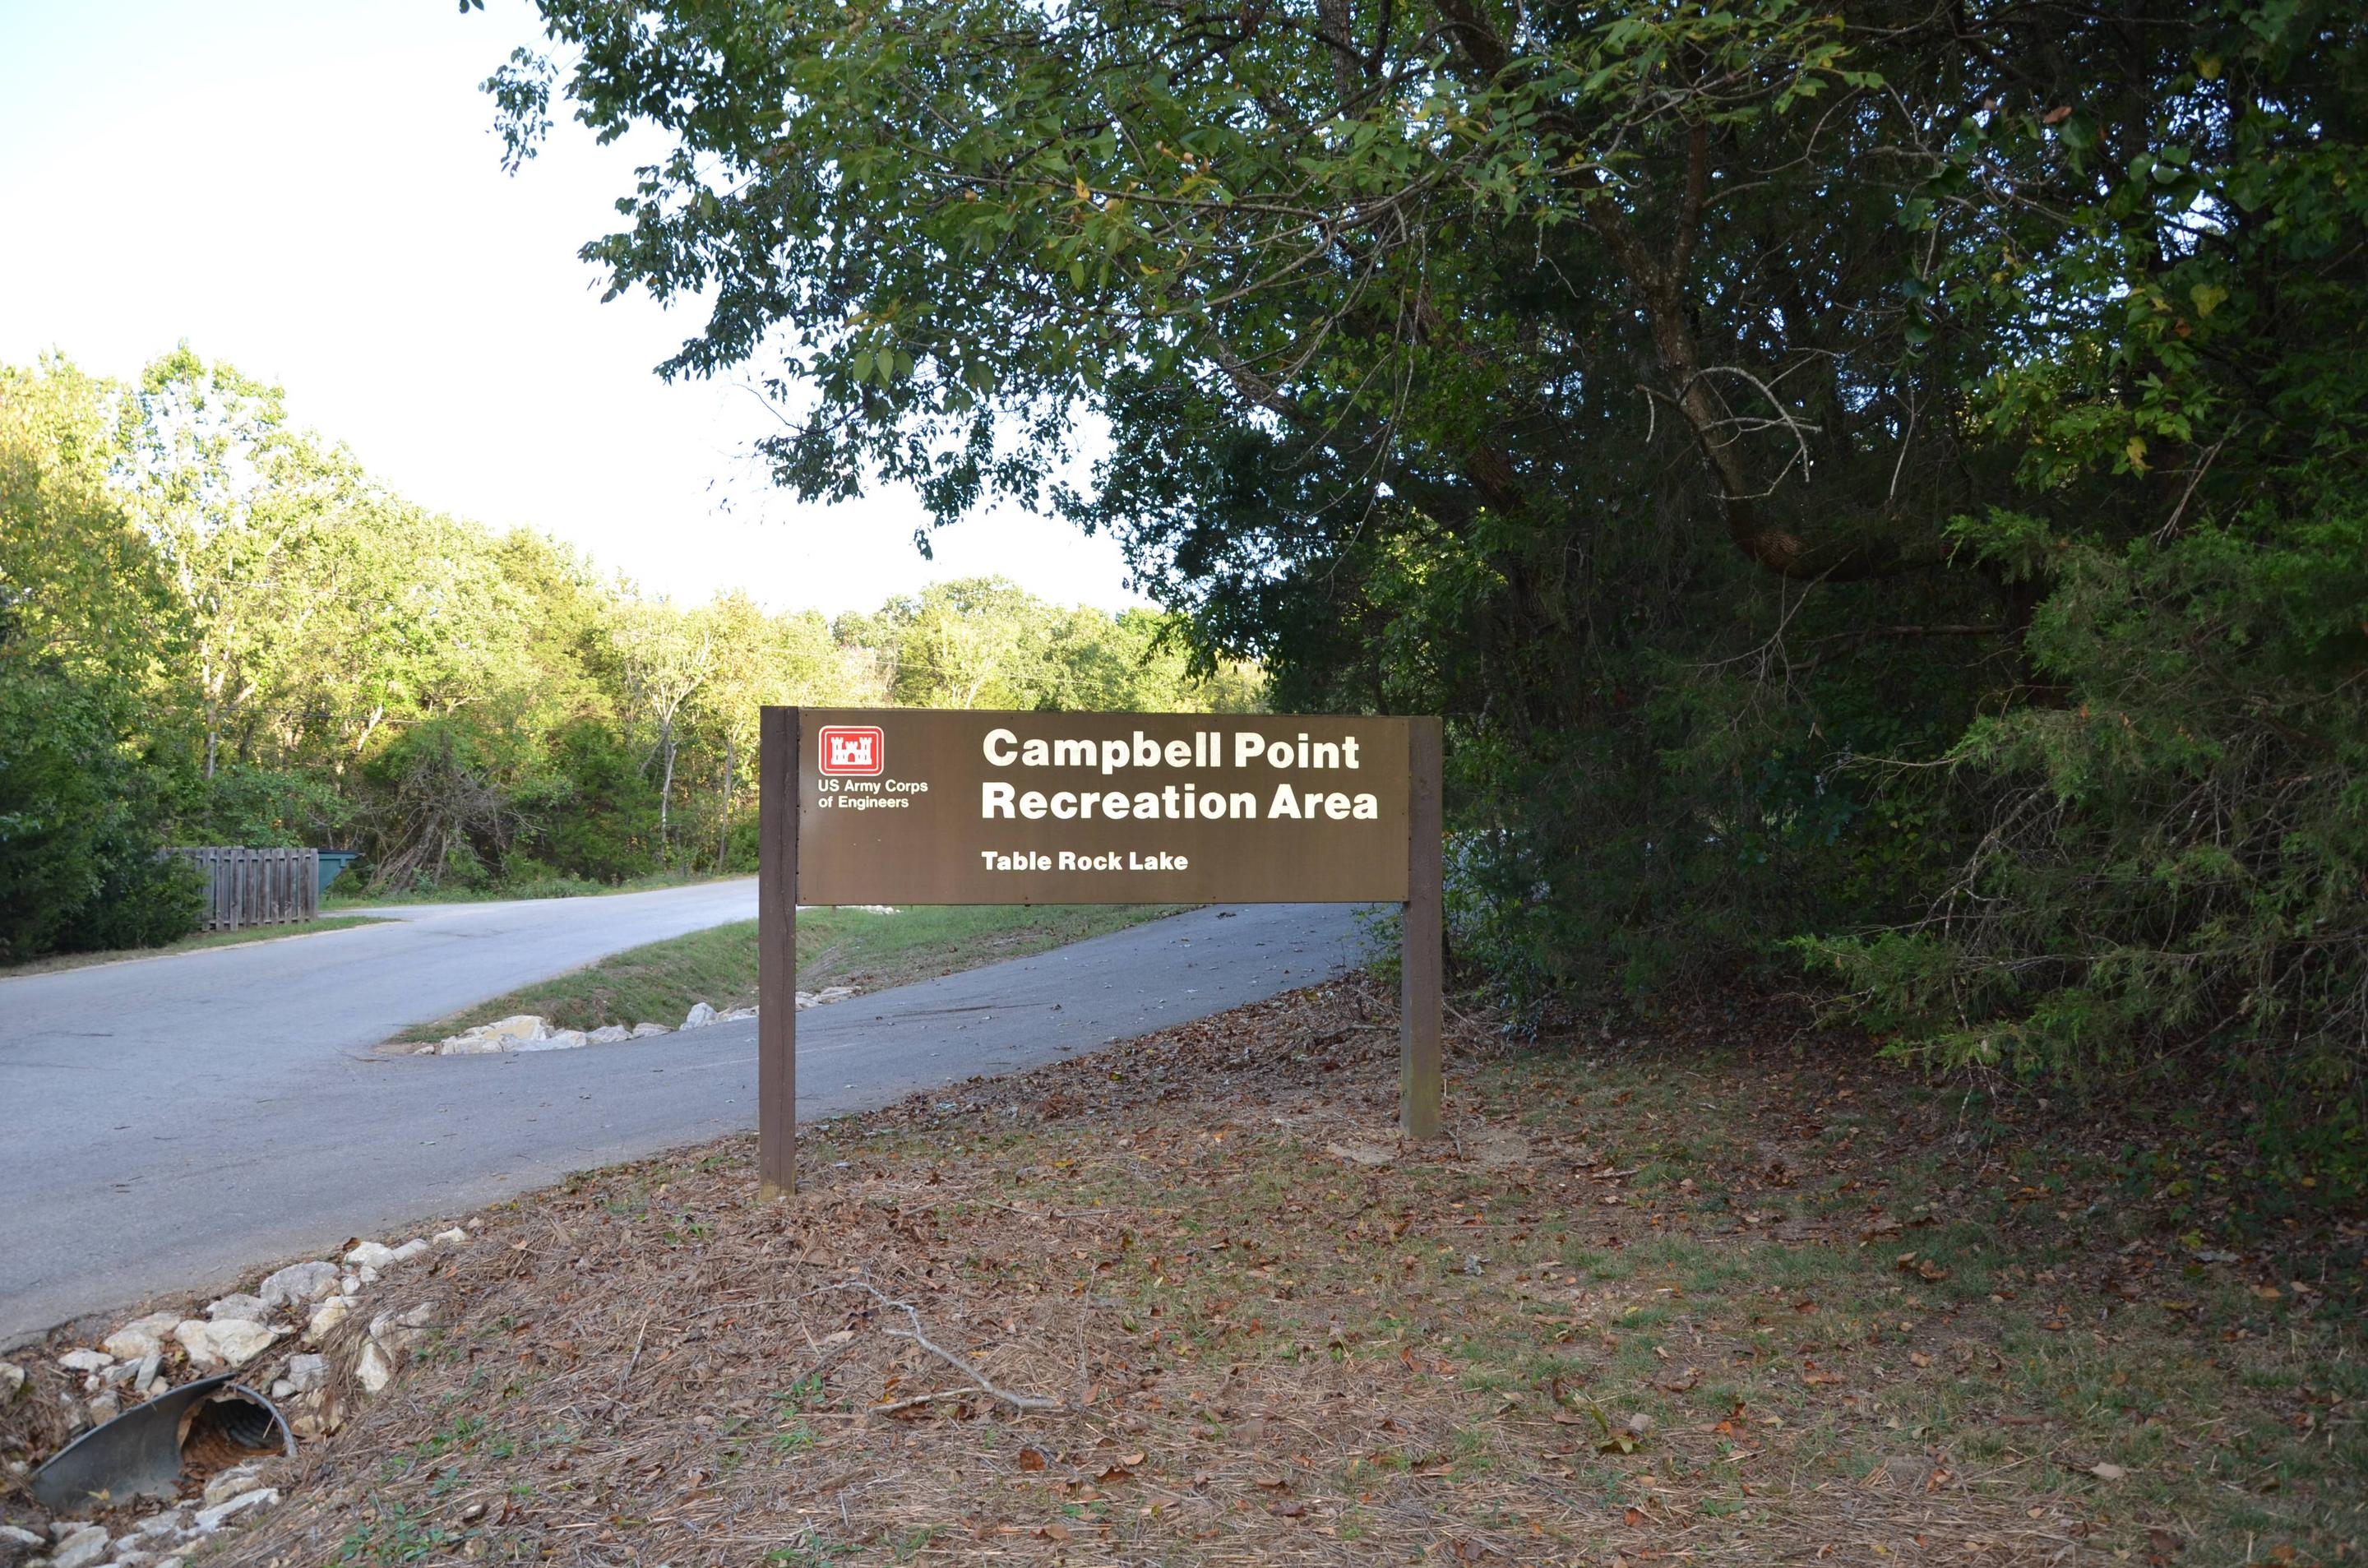 Campbell Point